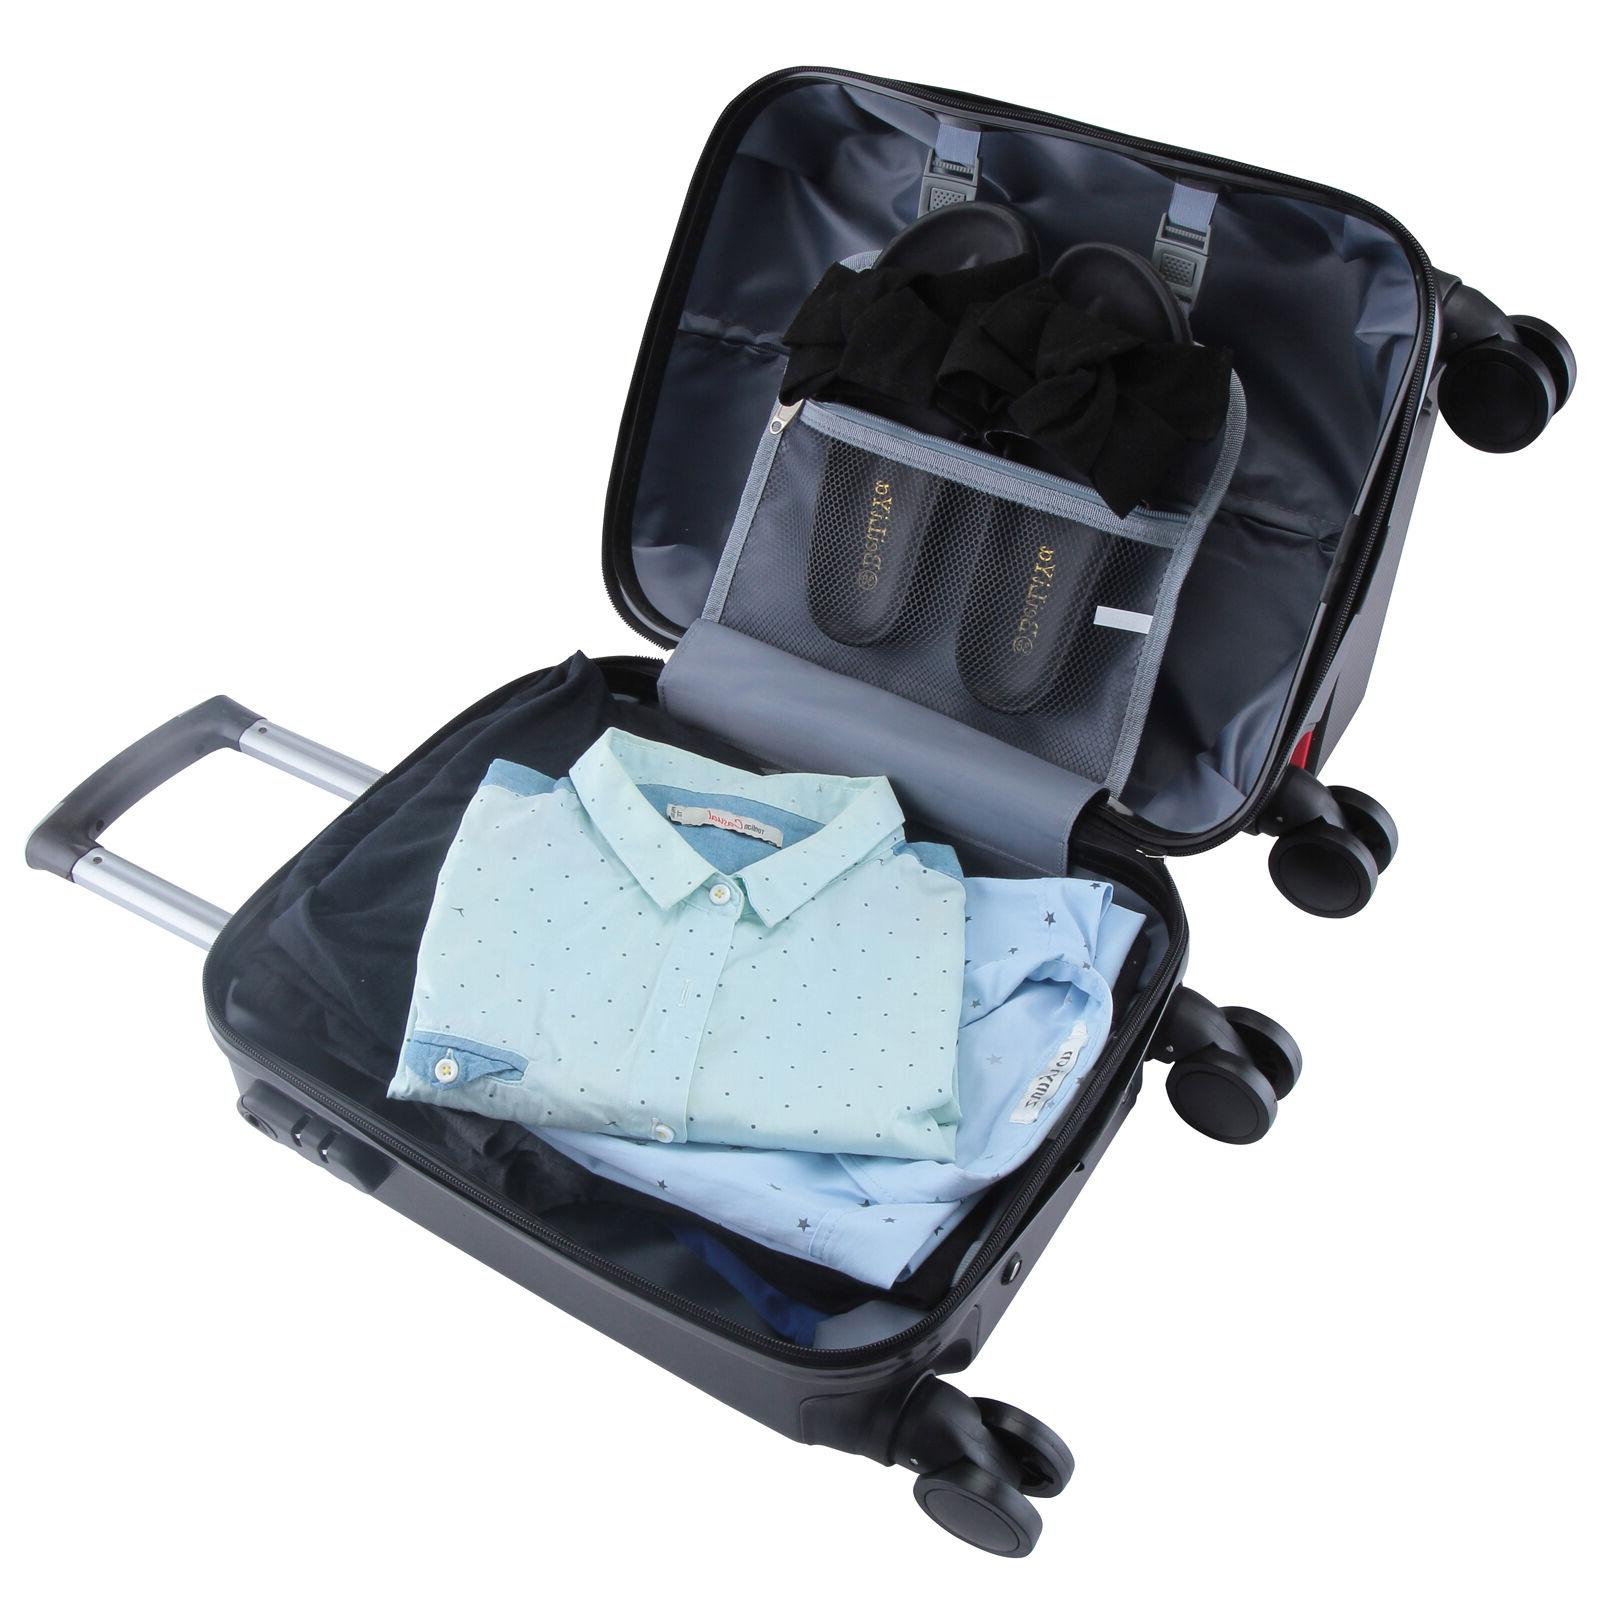 4Pcs Carry On Travel Bag